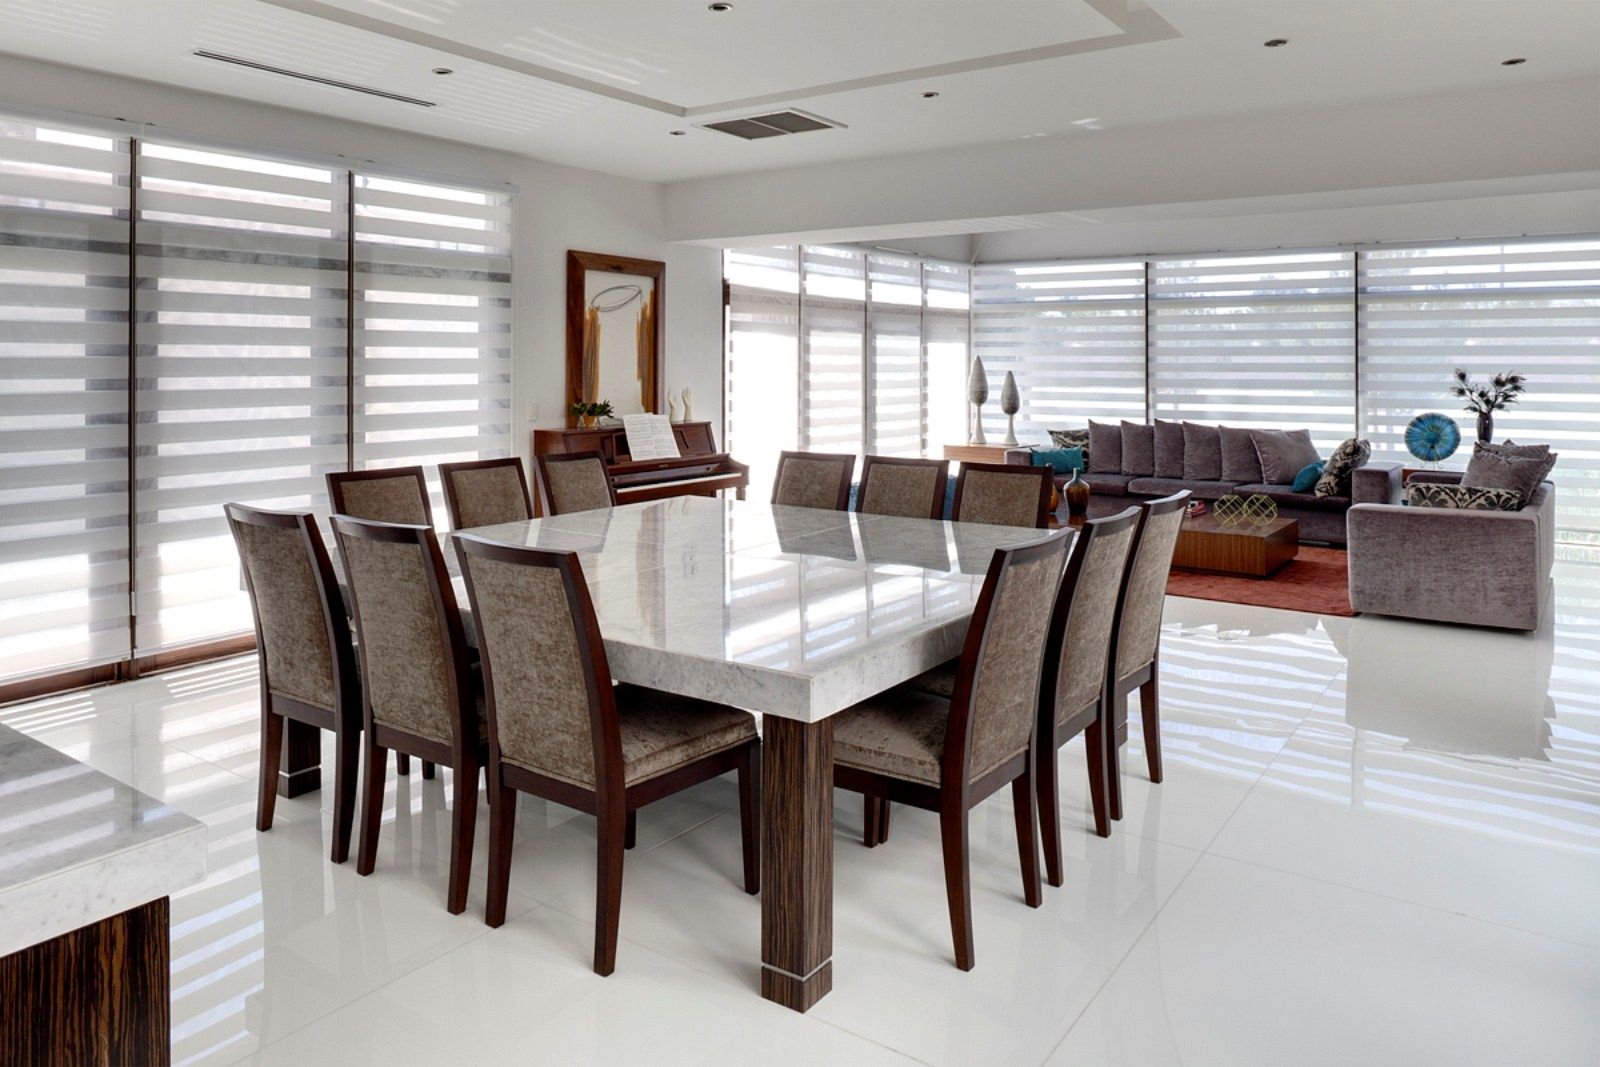 Amazing 12 Seater Square Dining Table On Impressive Photos